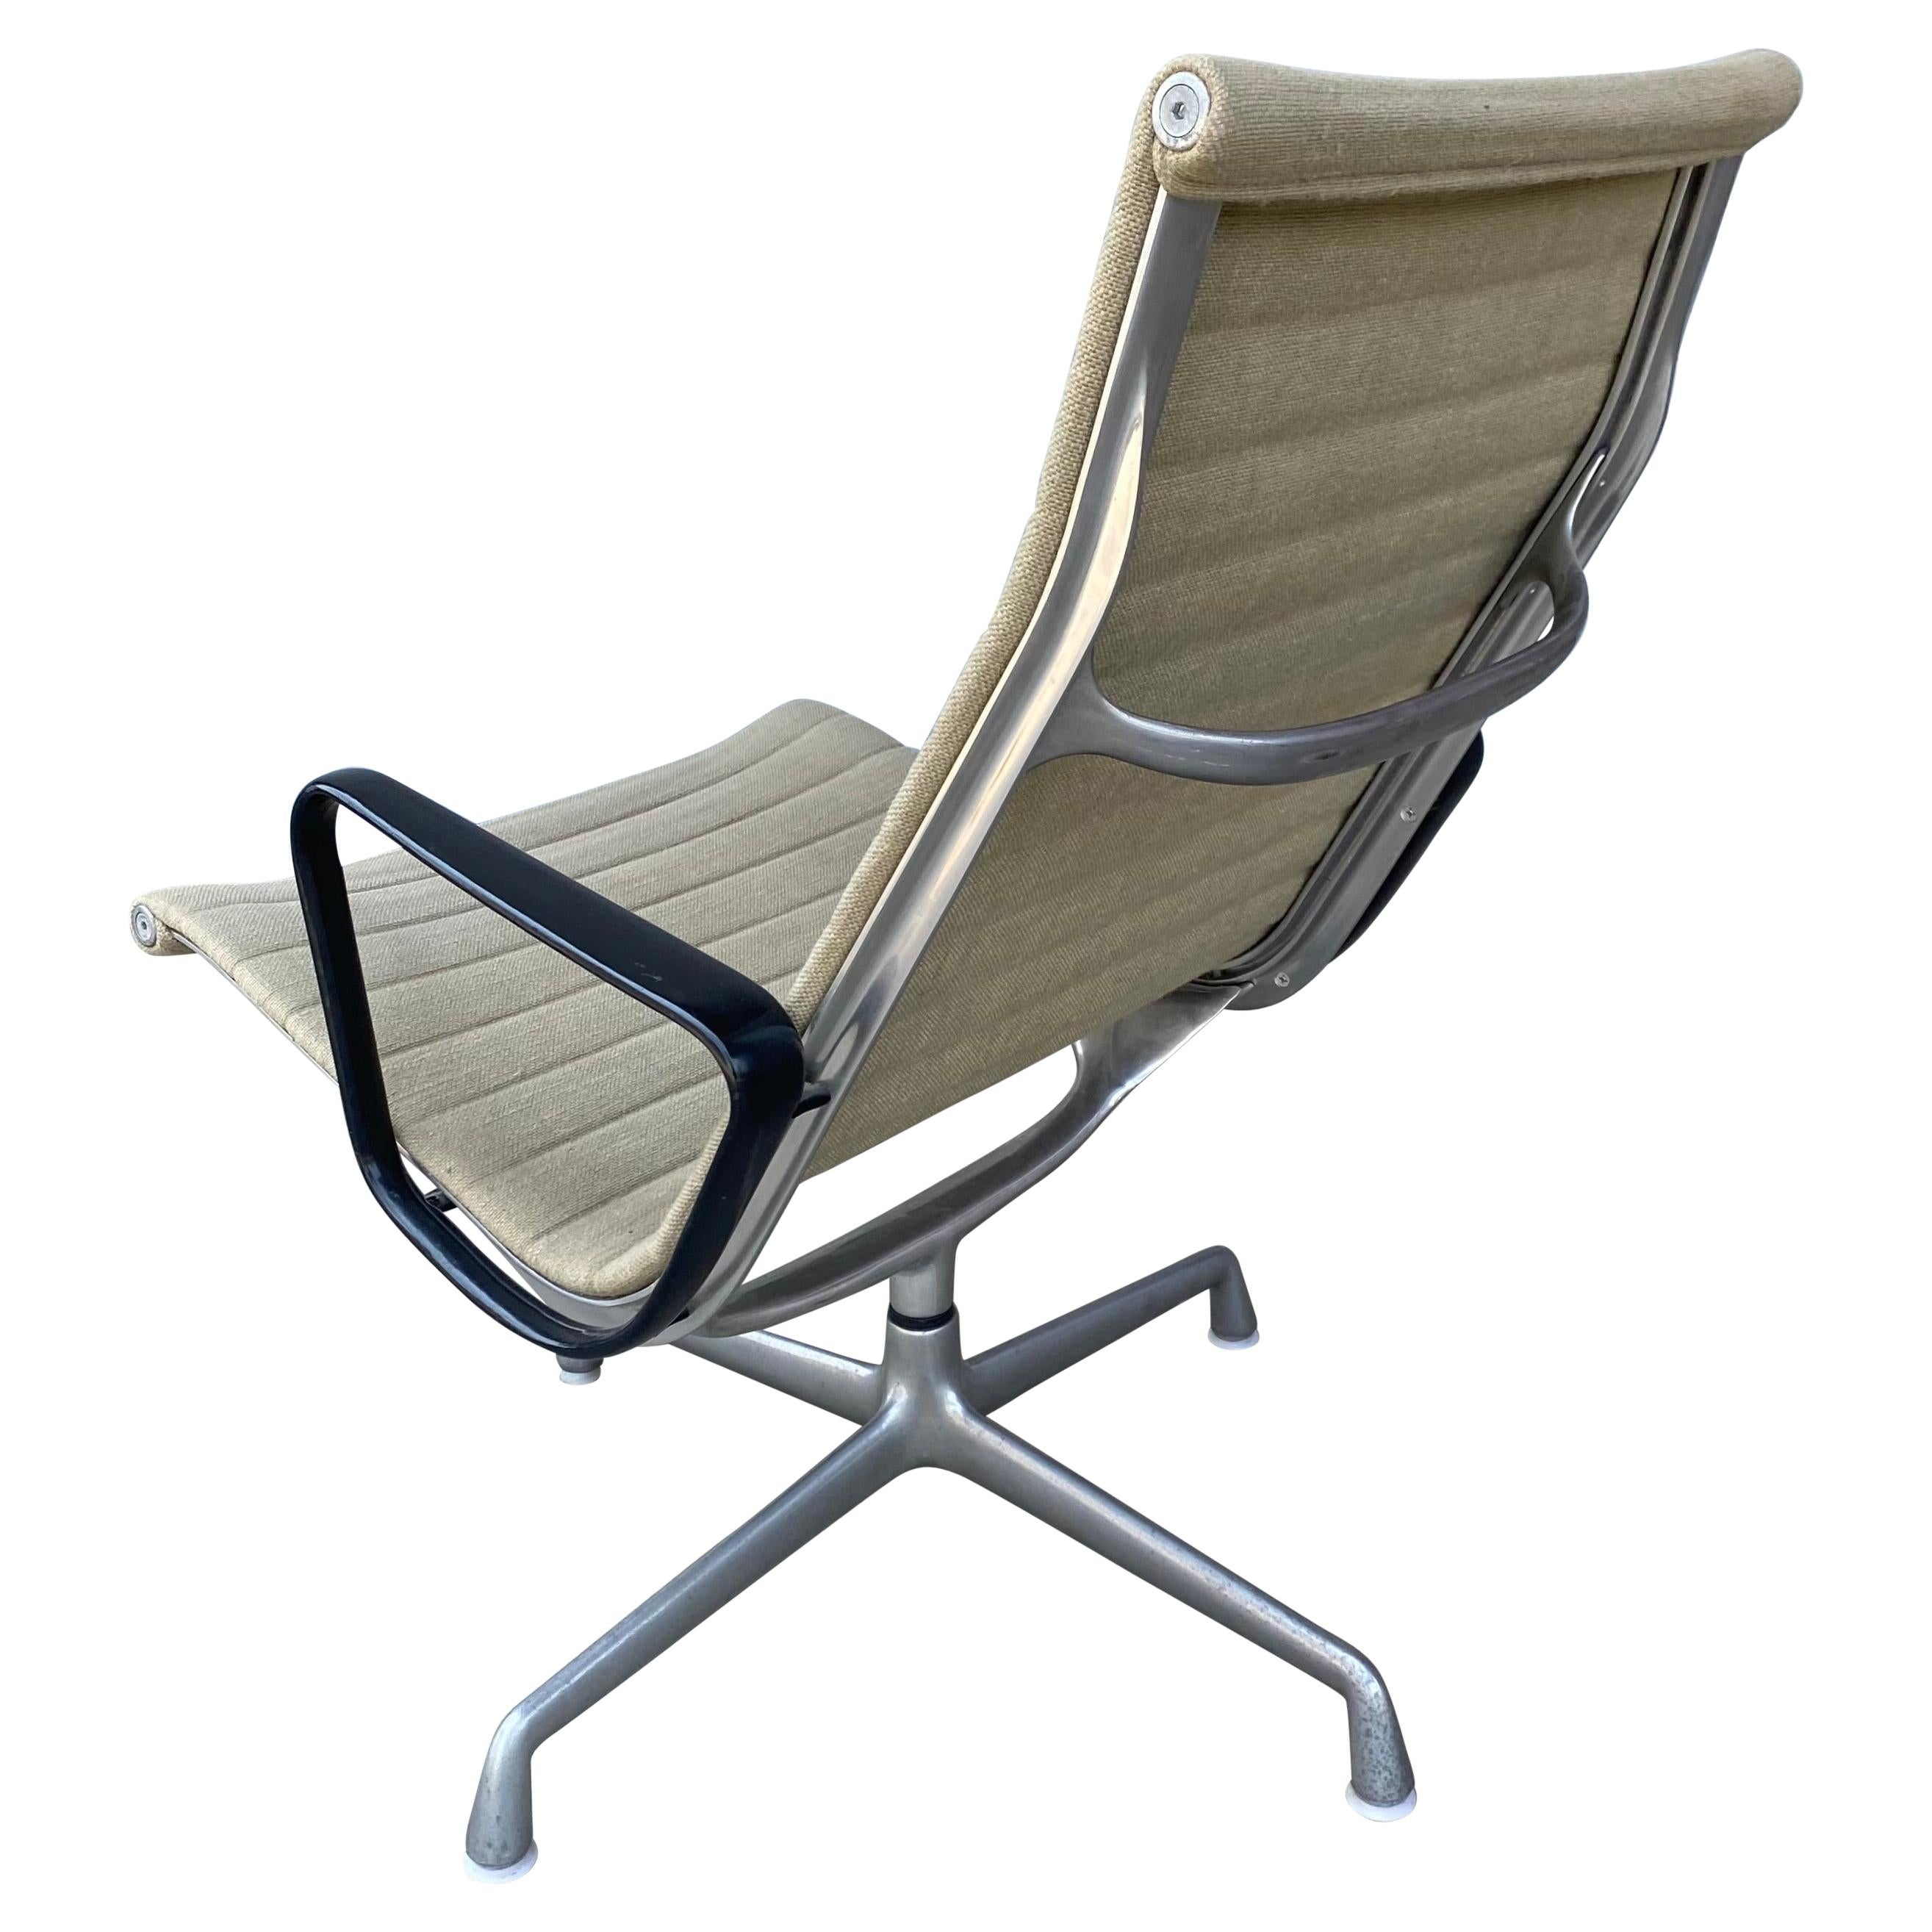 Early Production Eames Aluminum Group Lounge Chair / Herman Miller